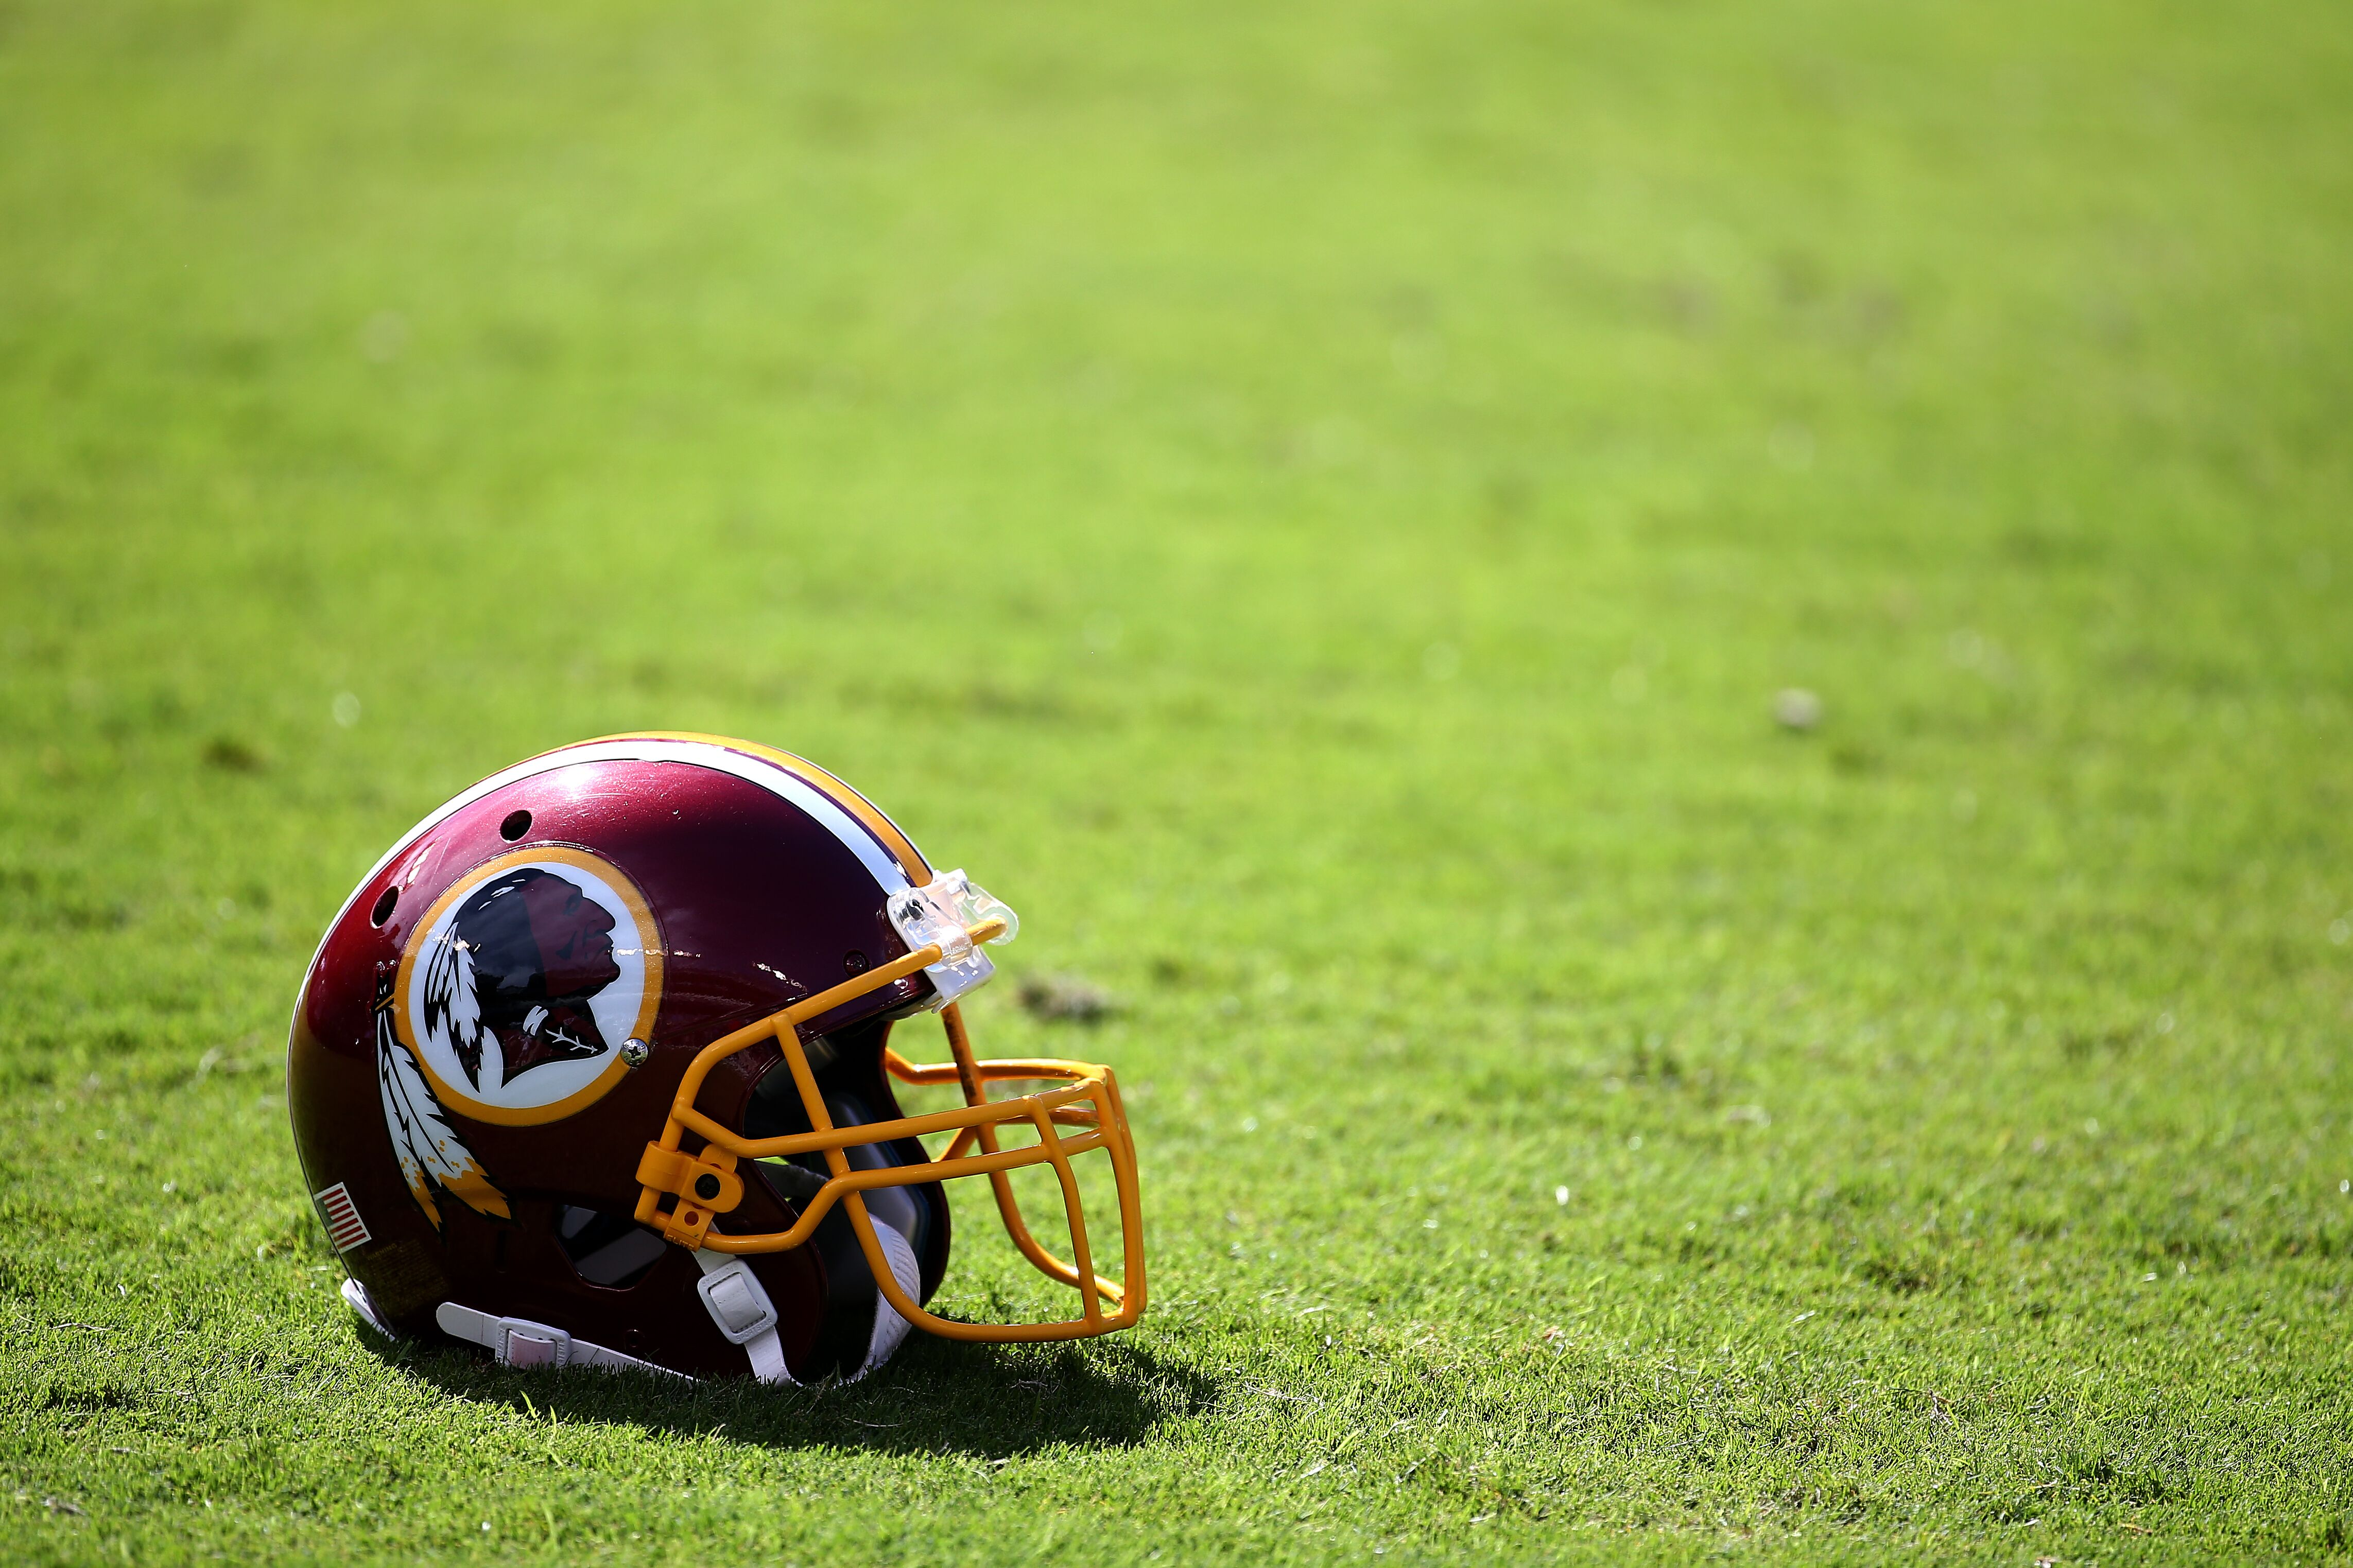 Redskins announce training camp dates for 2019 offseason